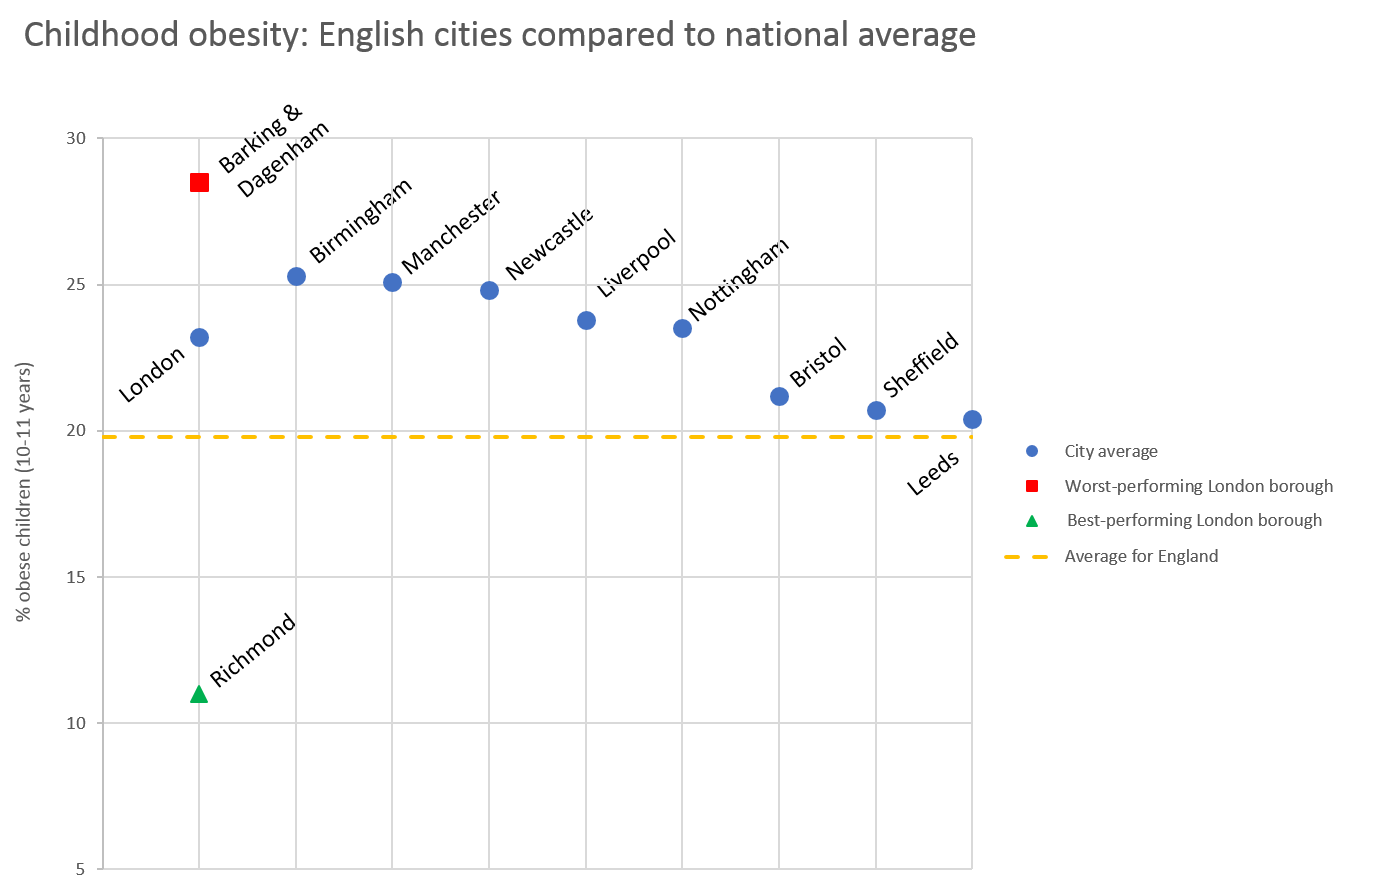 Childhood obesity in English cities